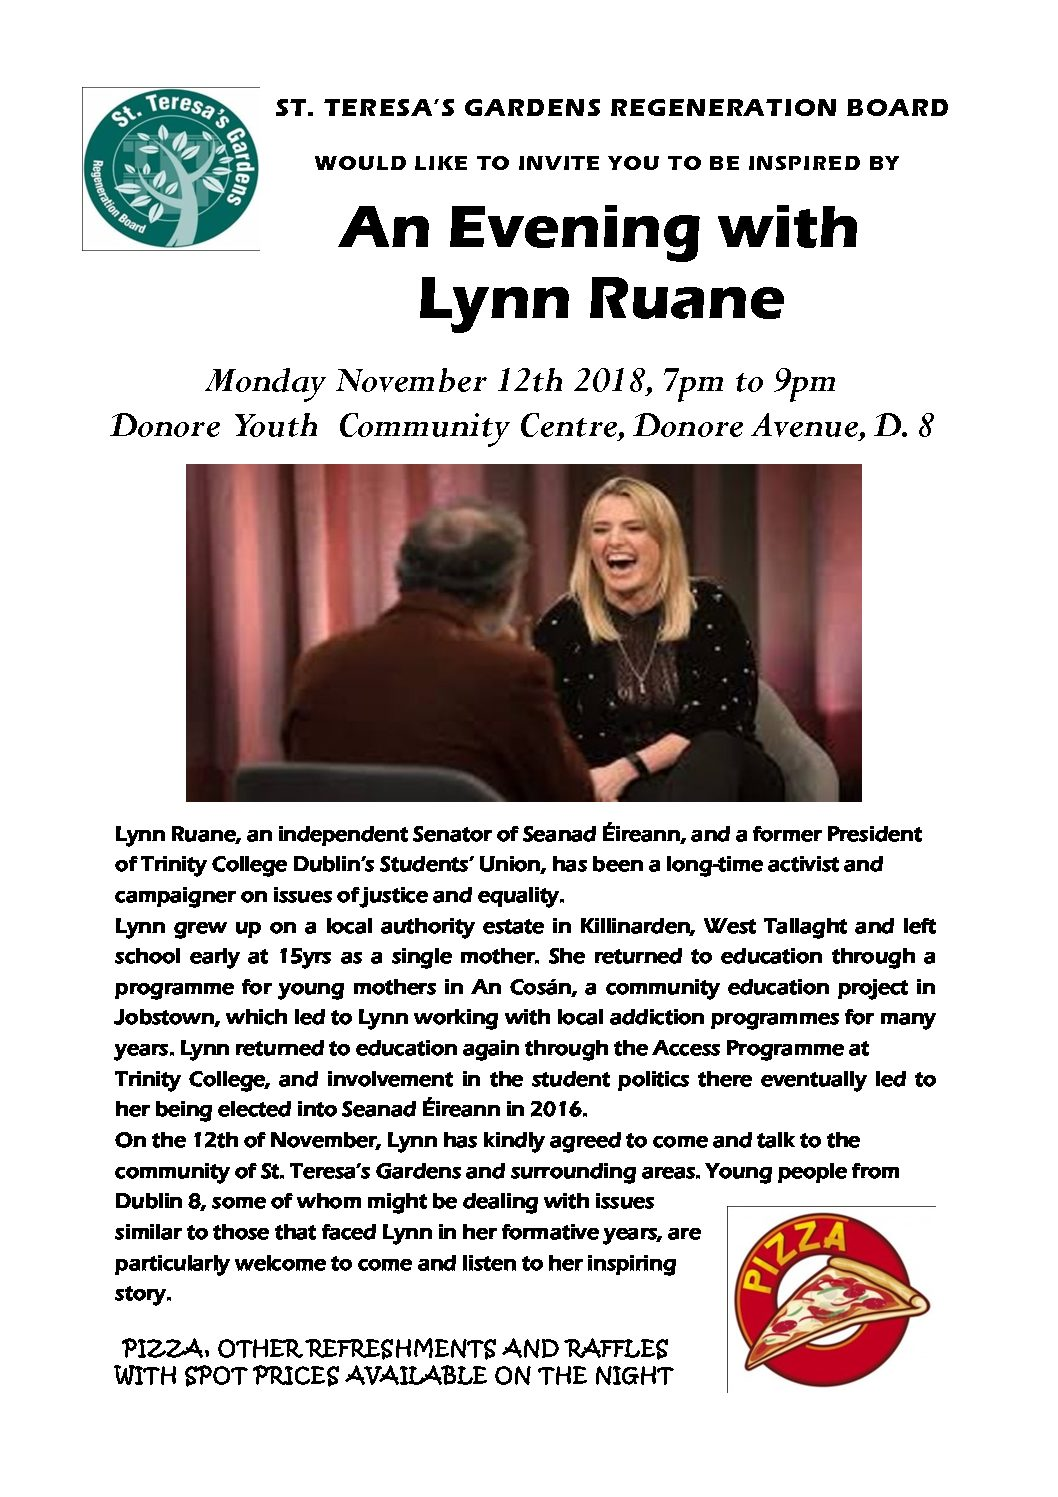 An Evening with Lynn Ruane